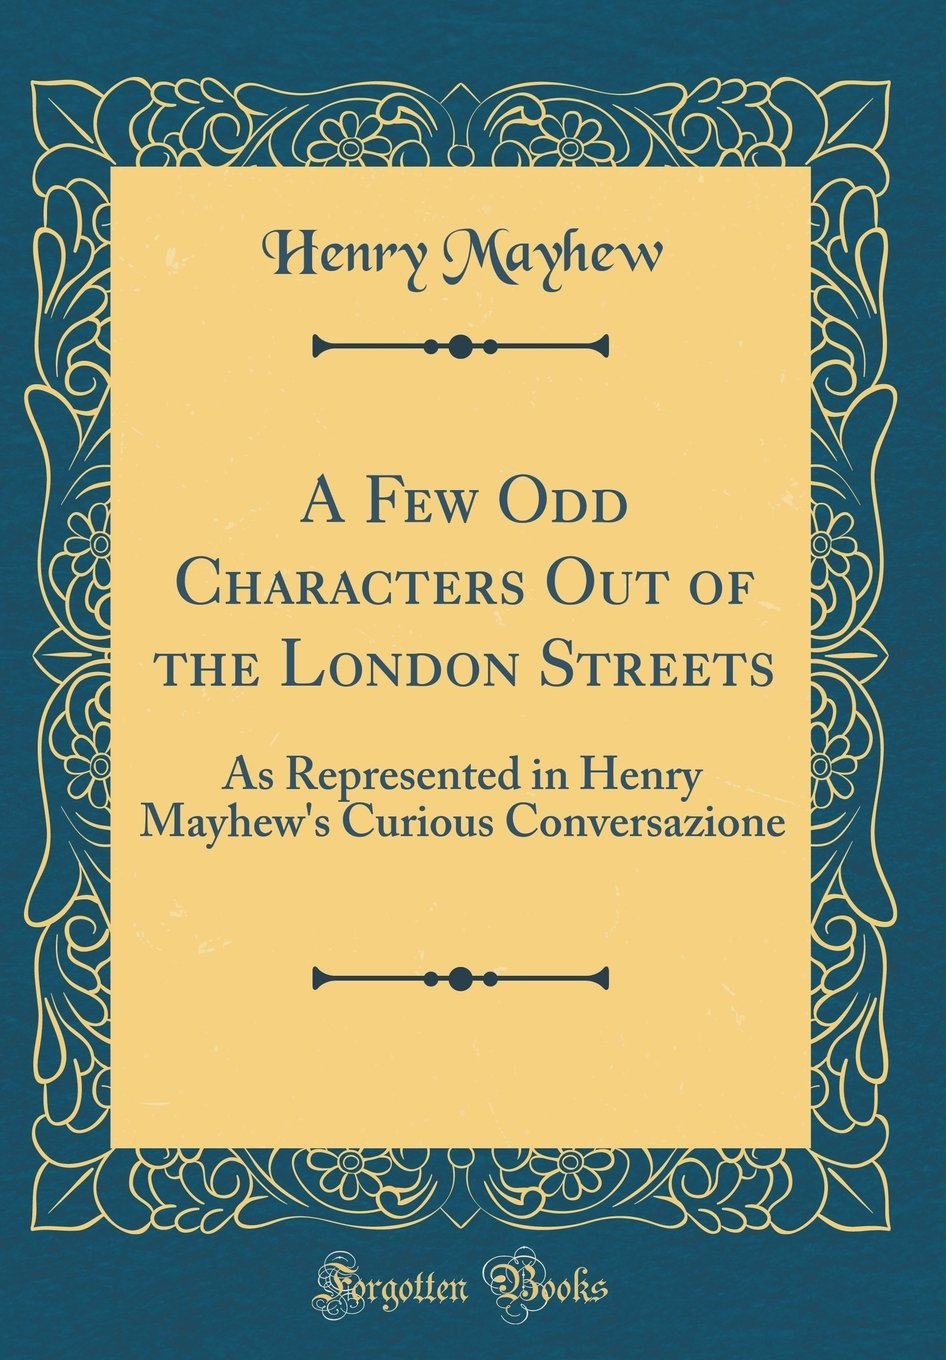 Download A Few Odd Characters Out of the London Streets: As Represented in Henry Mayhew's Curious Conversazione (Classic Reprint) ebook